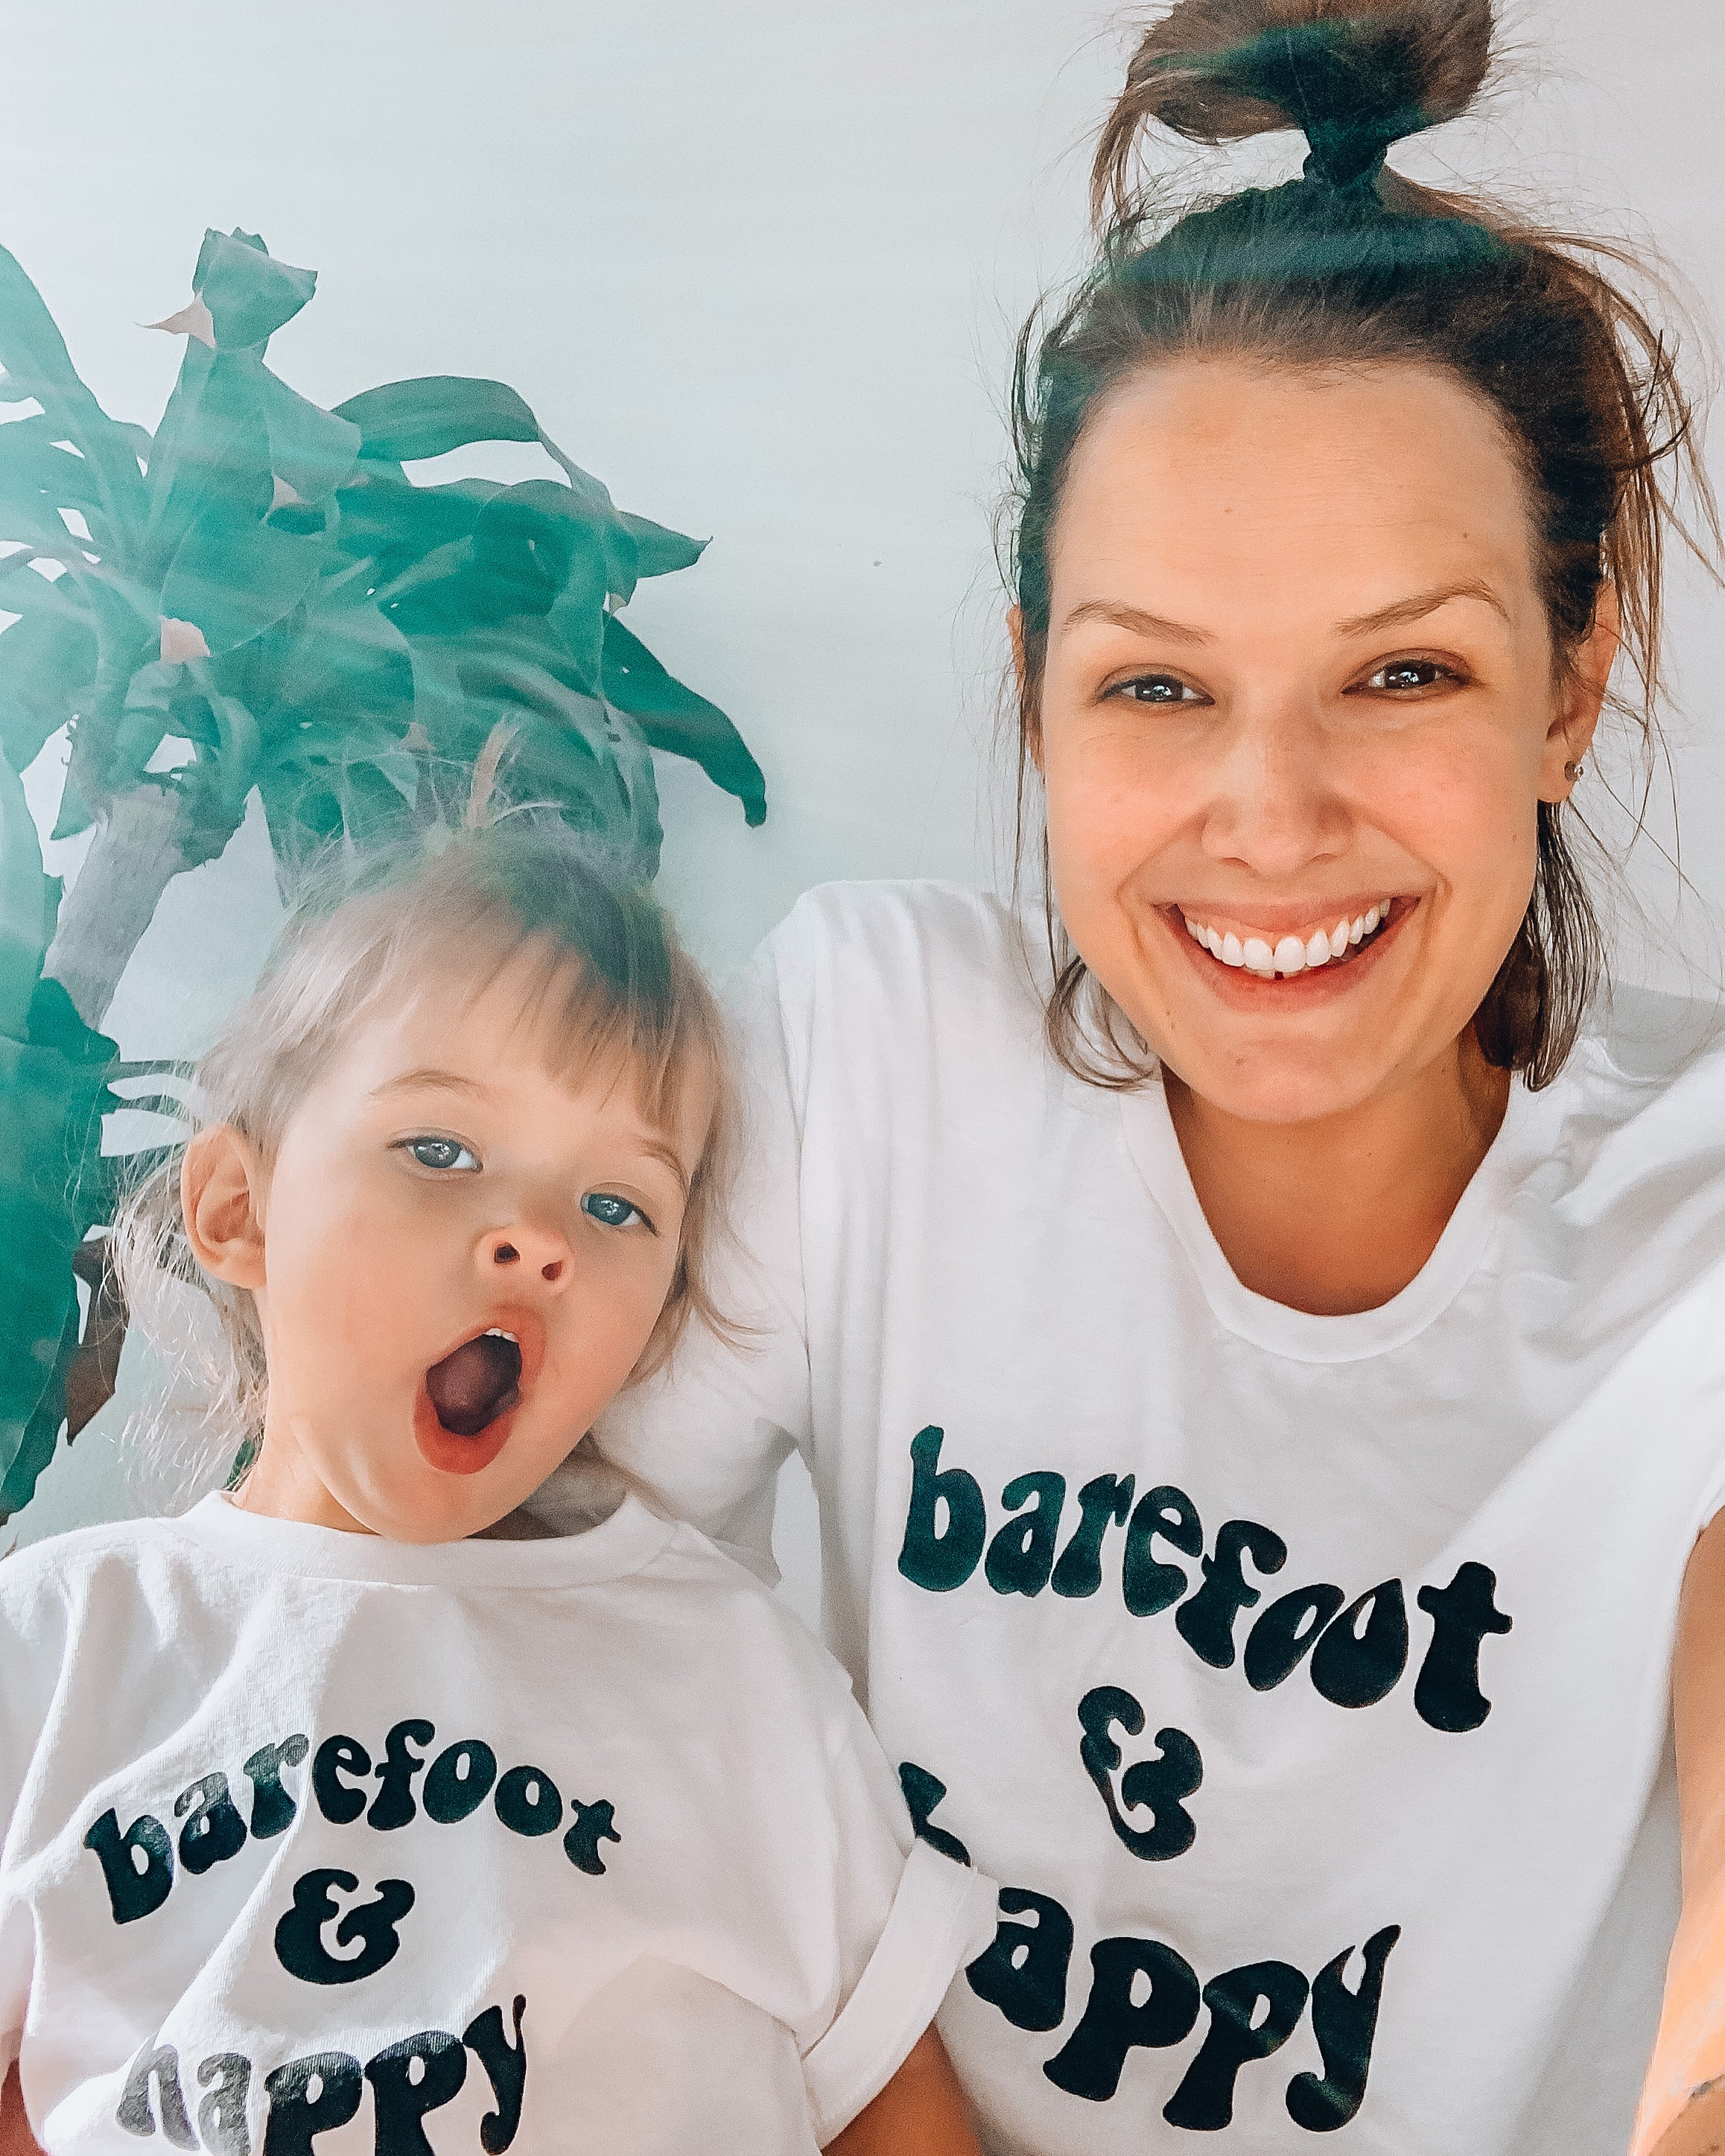 BAREFOOT & HAPPY - Adult Unisex Crewneck Tee